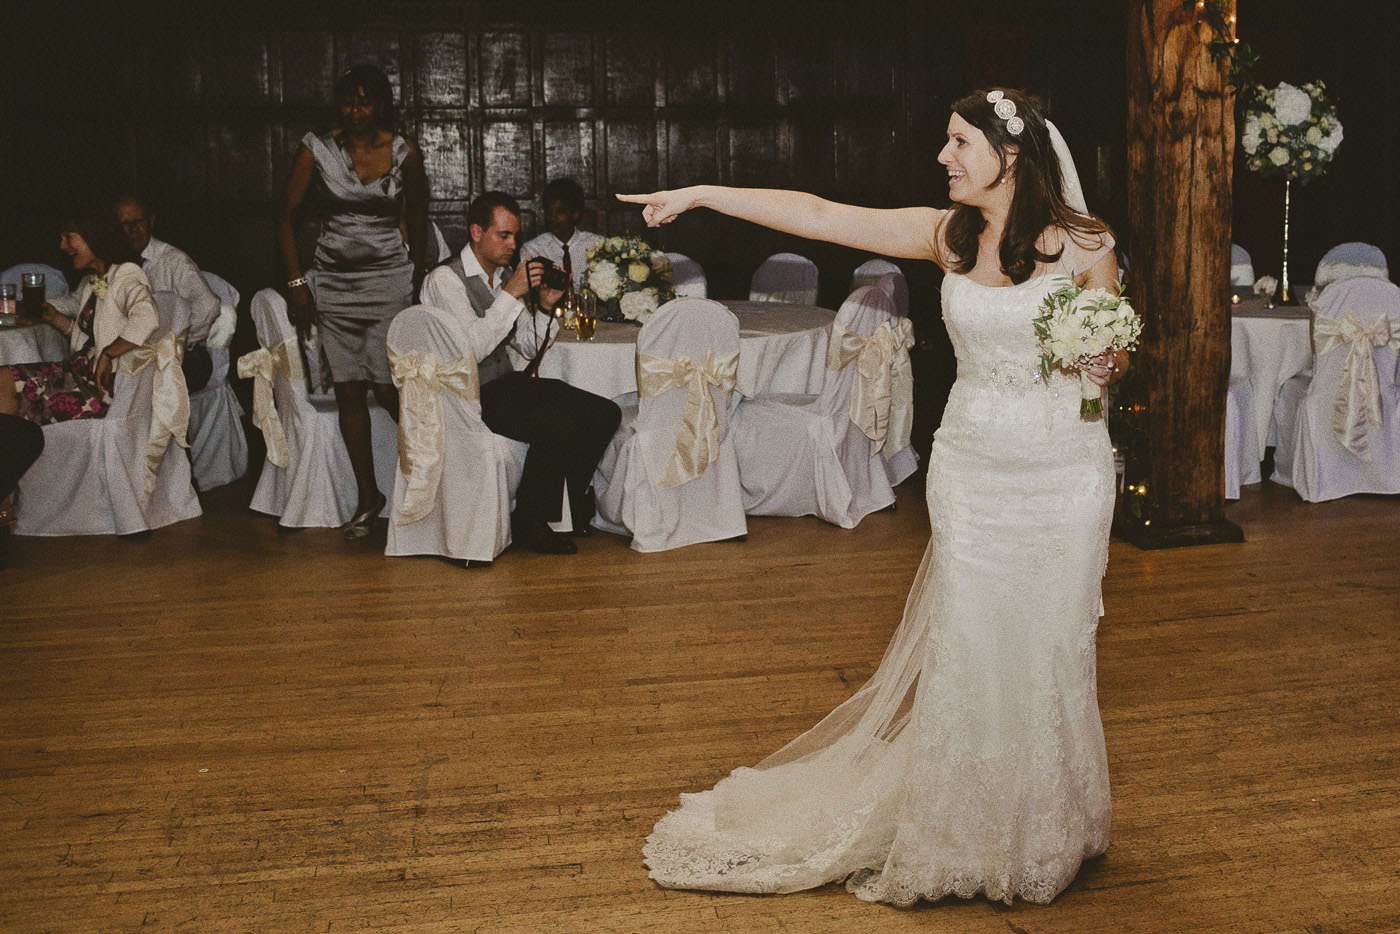 LewisAnna Great Fosters Wedding Photographer 0107 1